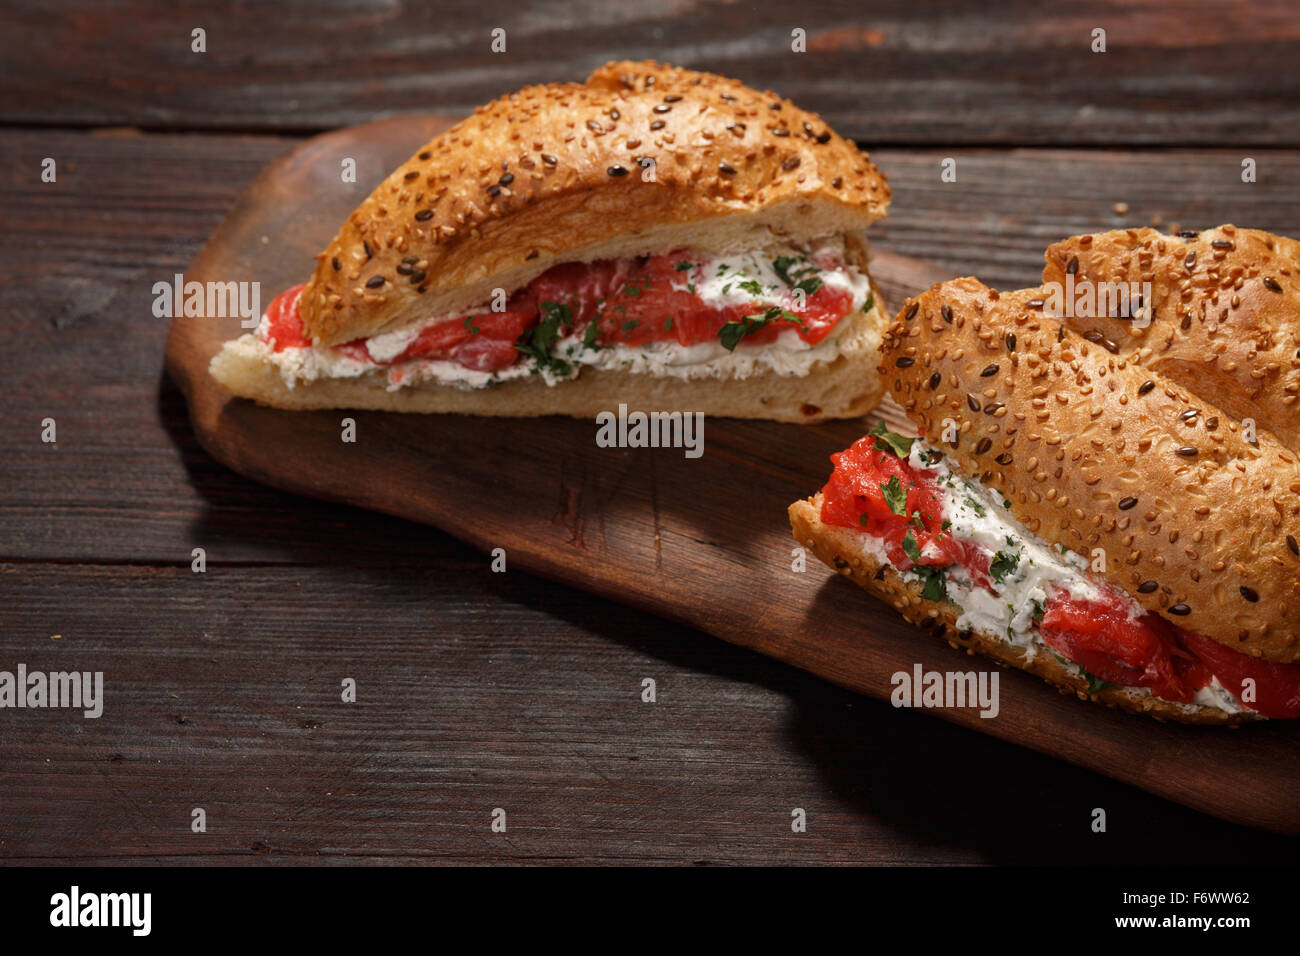 Sandwich from wholegrain bread with salmon, mild creamy cheese and herbs - Stock Image